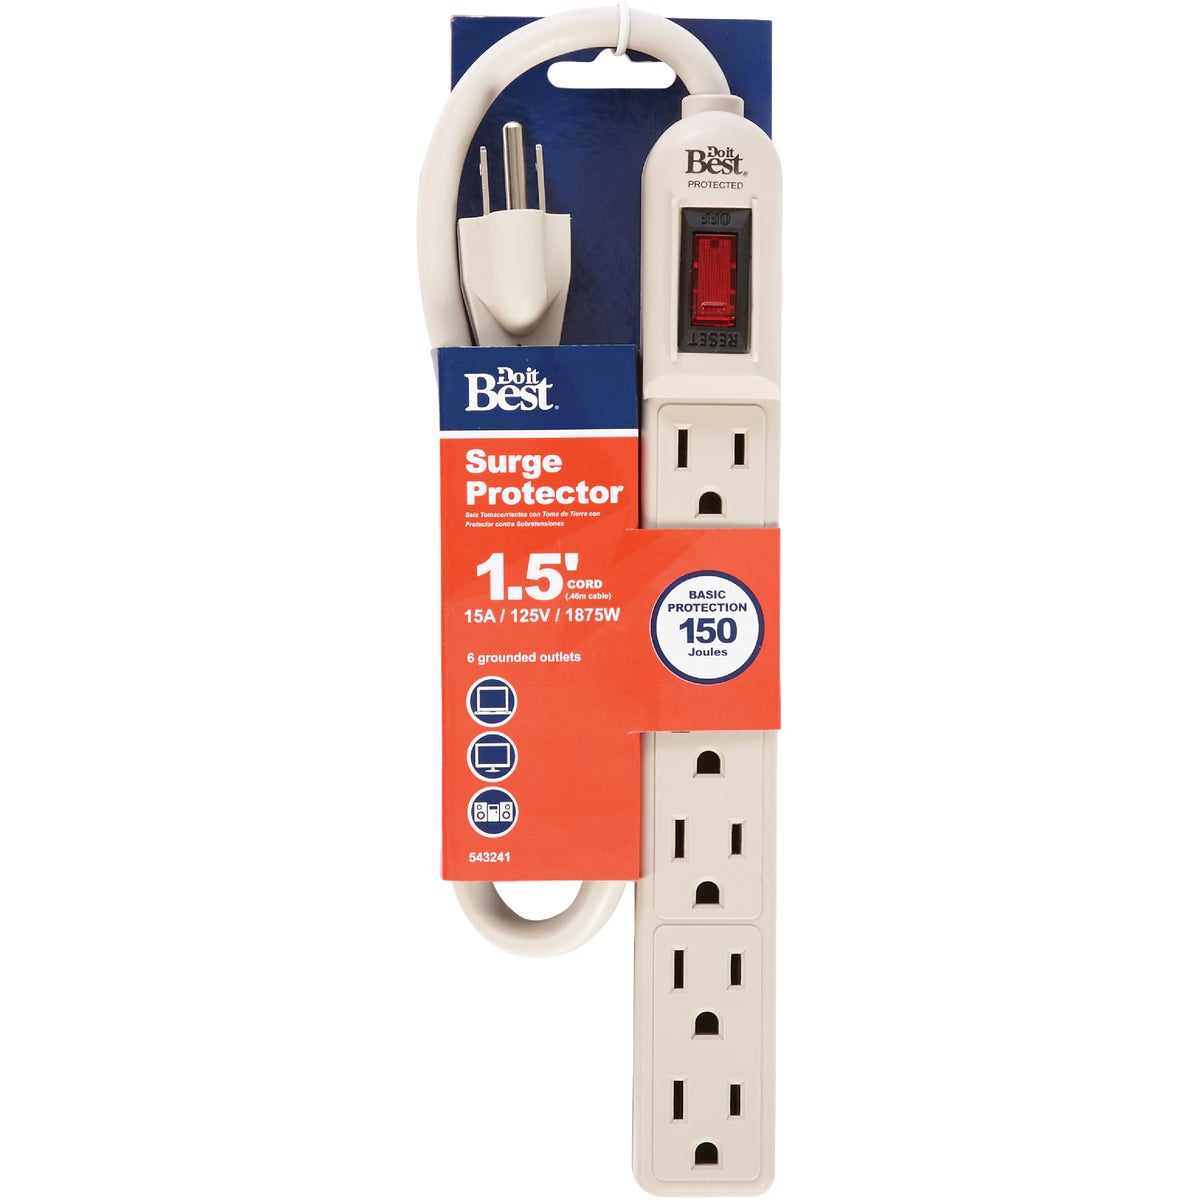 6-OUTLET SURGE STRIP